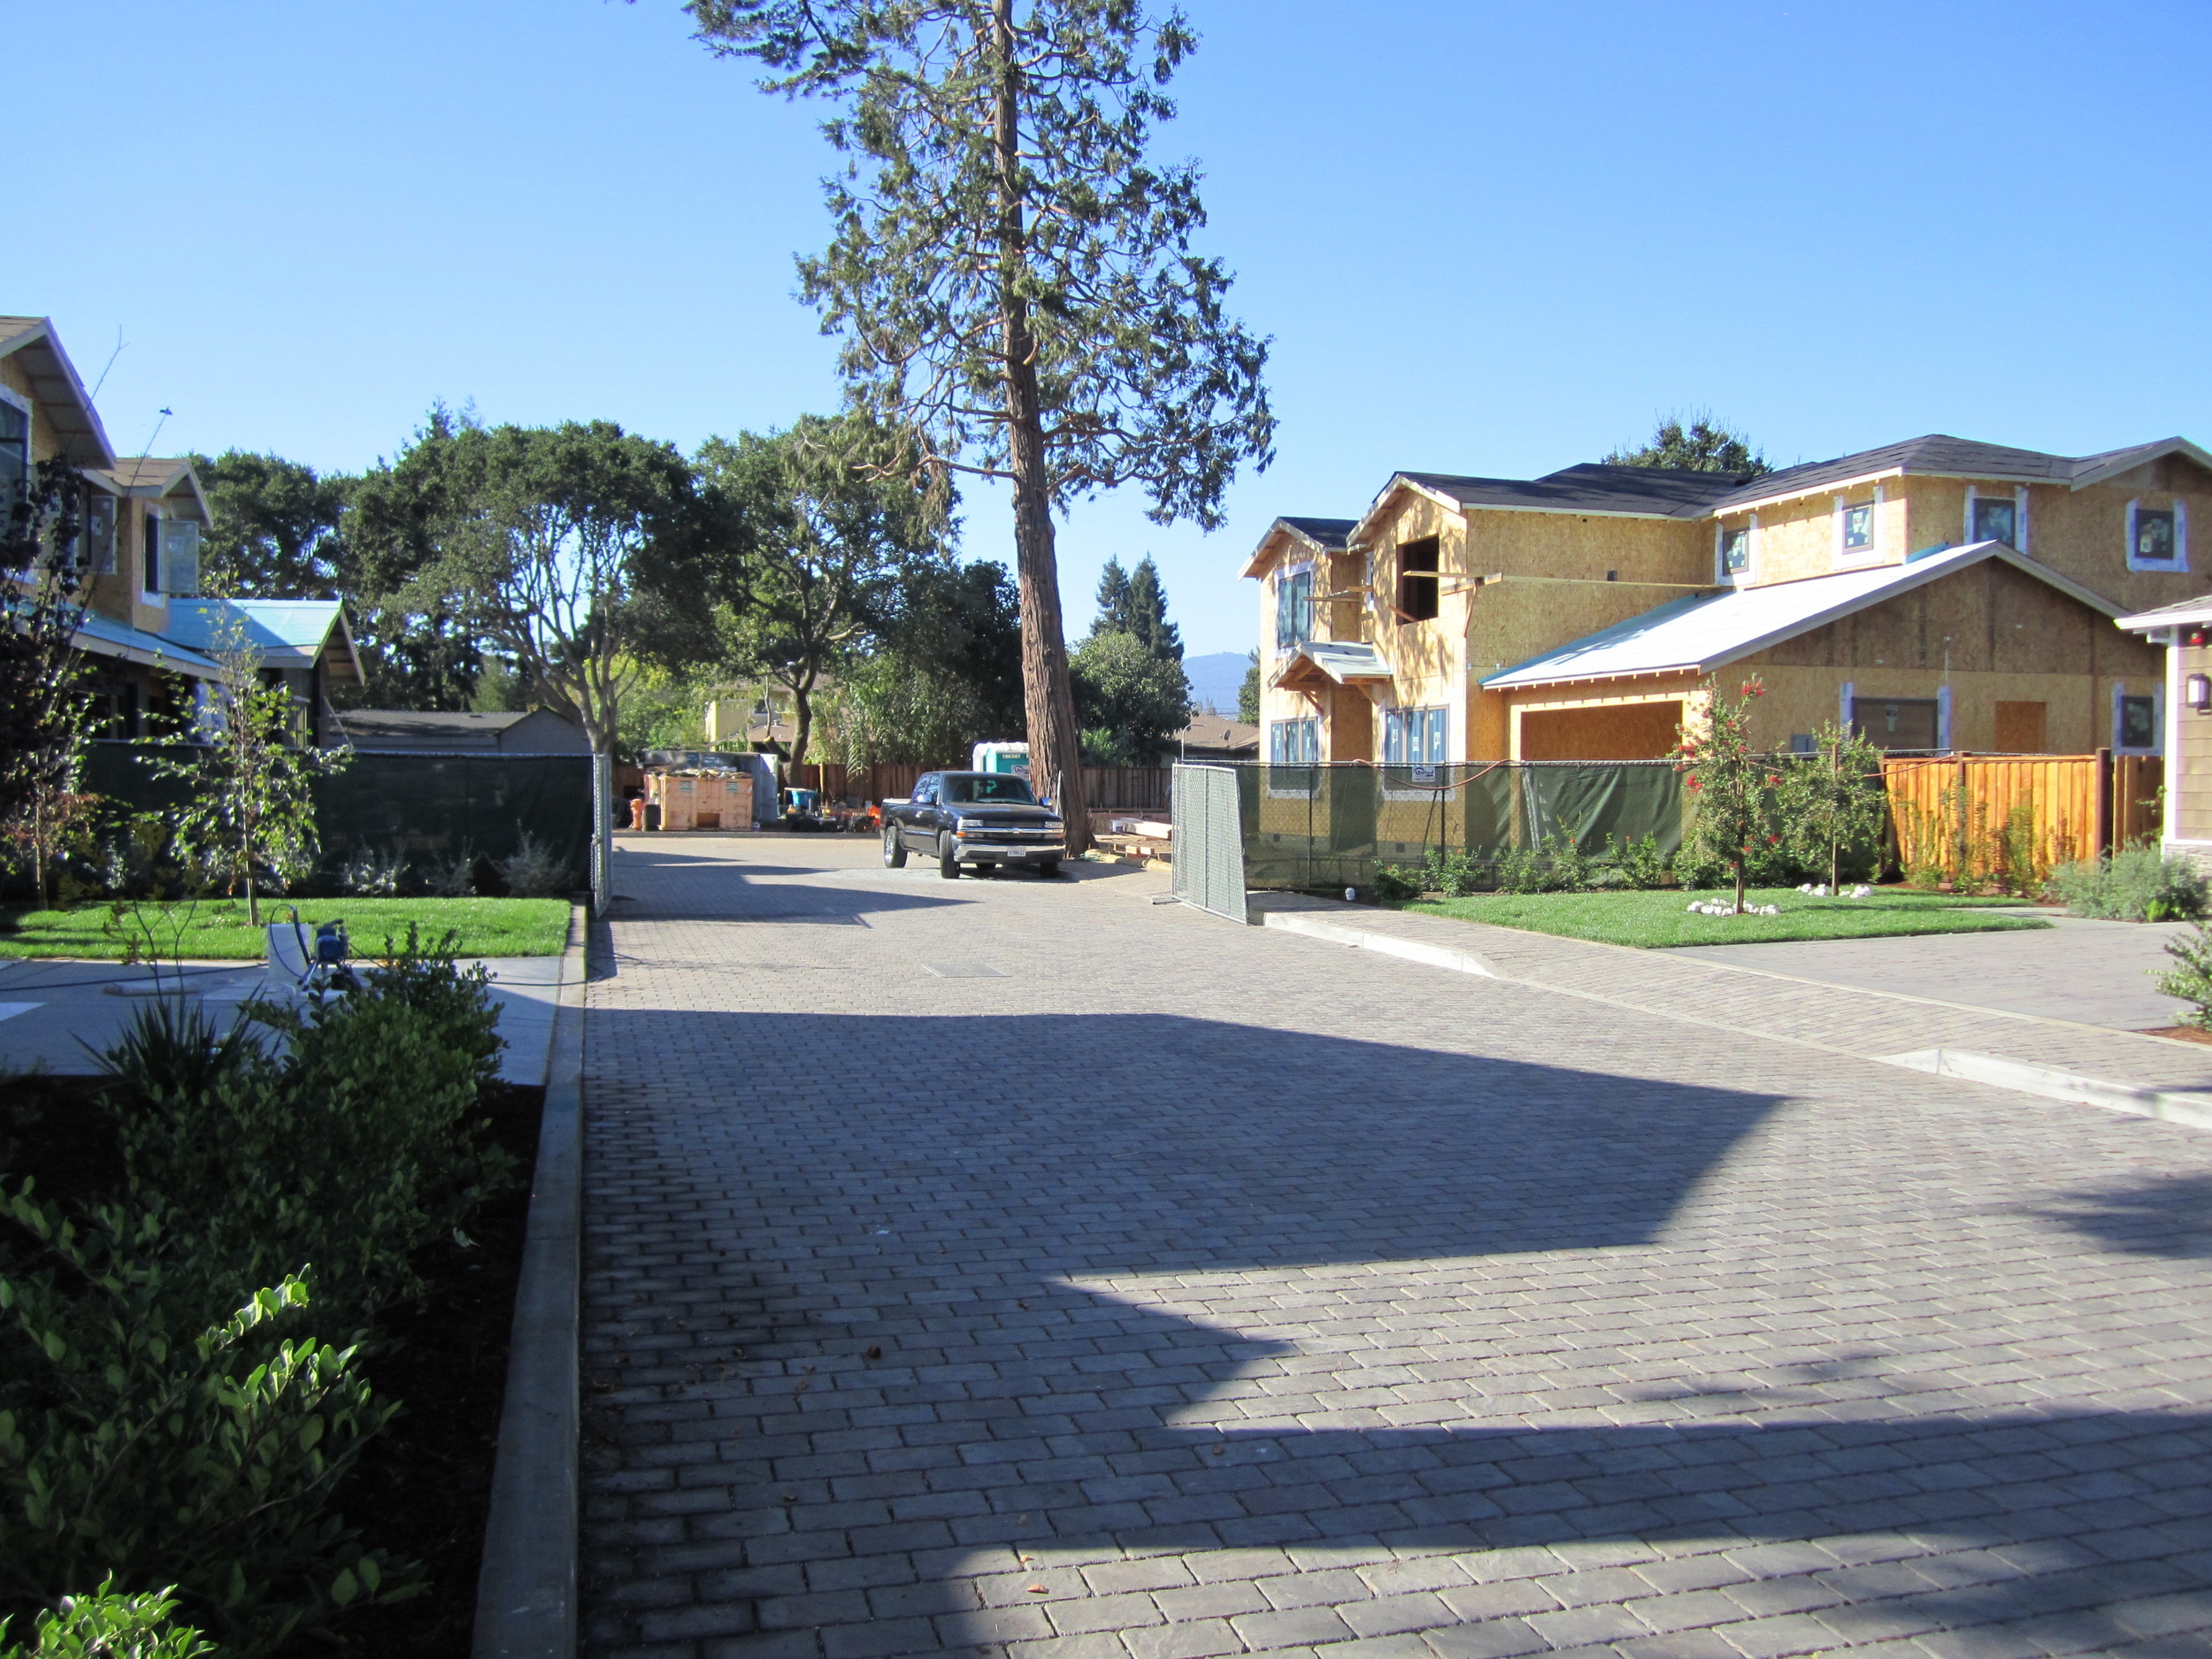 6 new homes Rossi Lane Redwood City